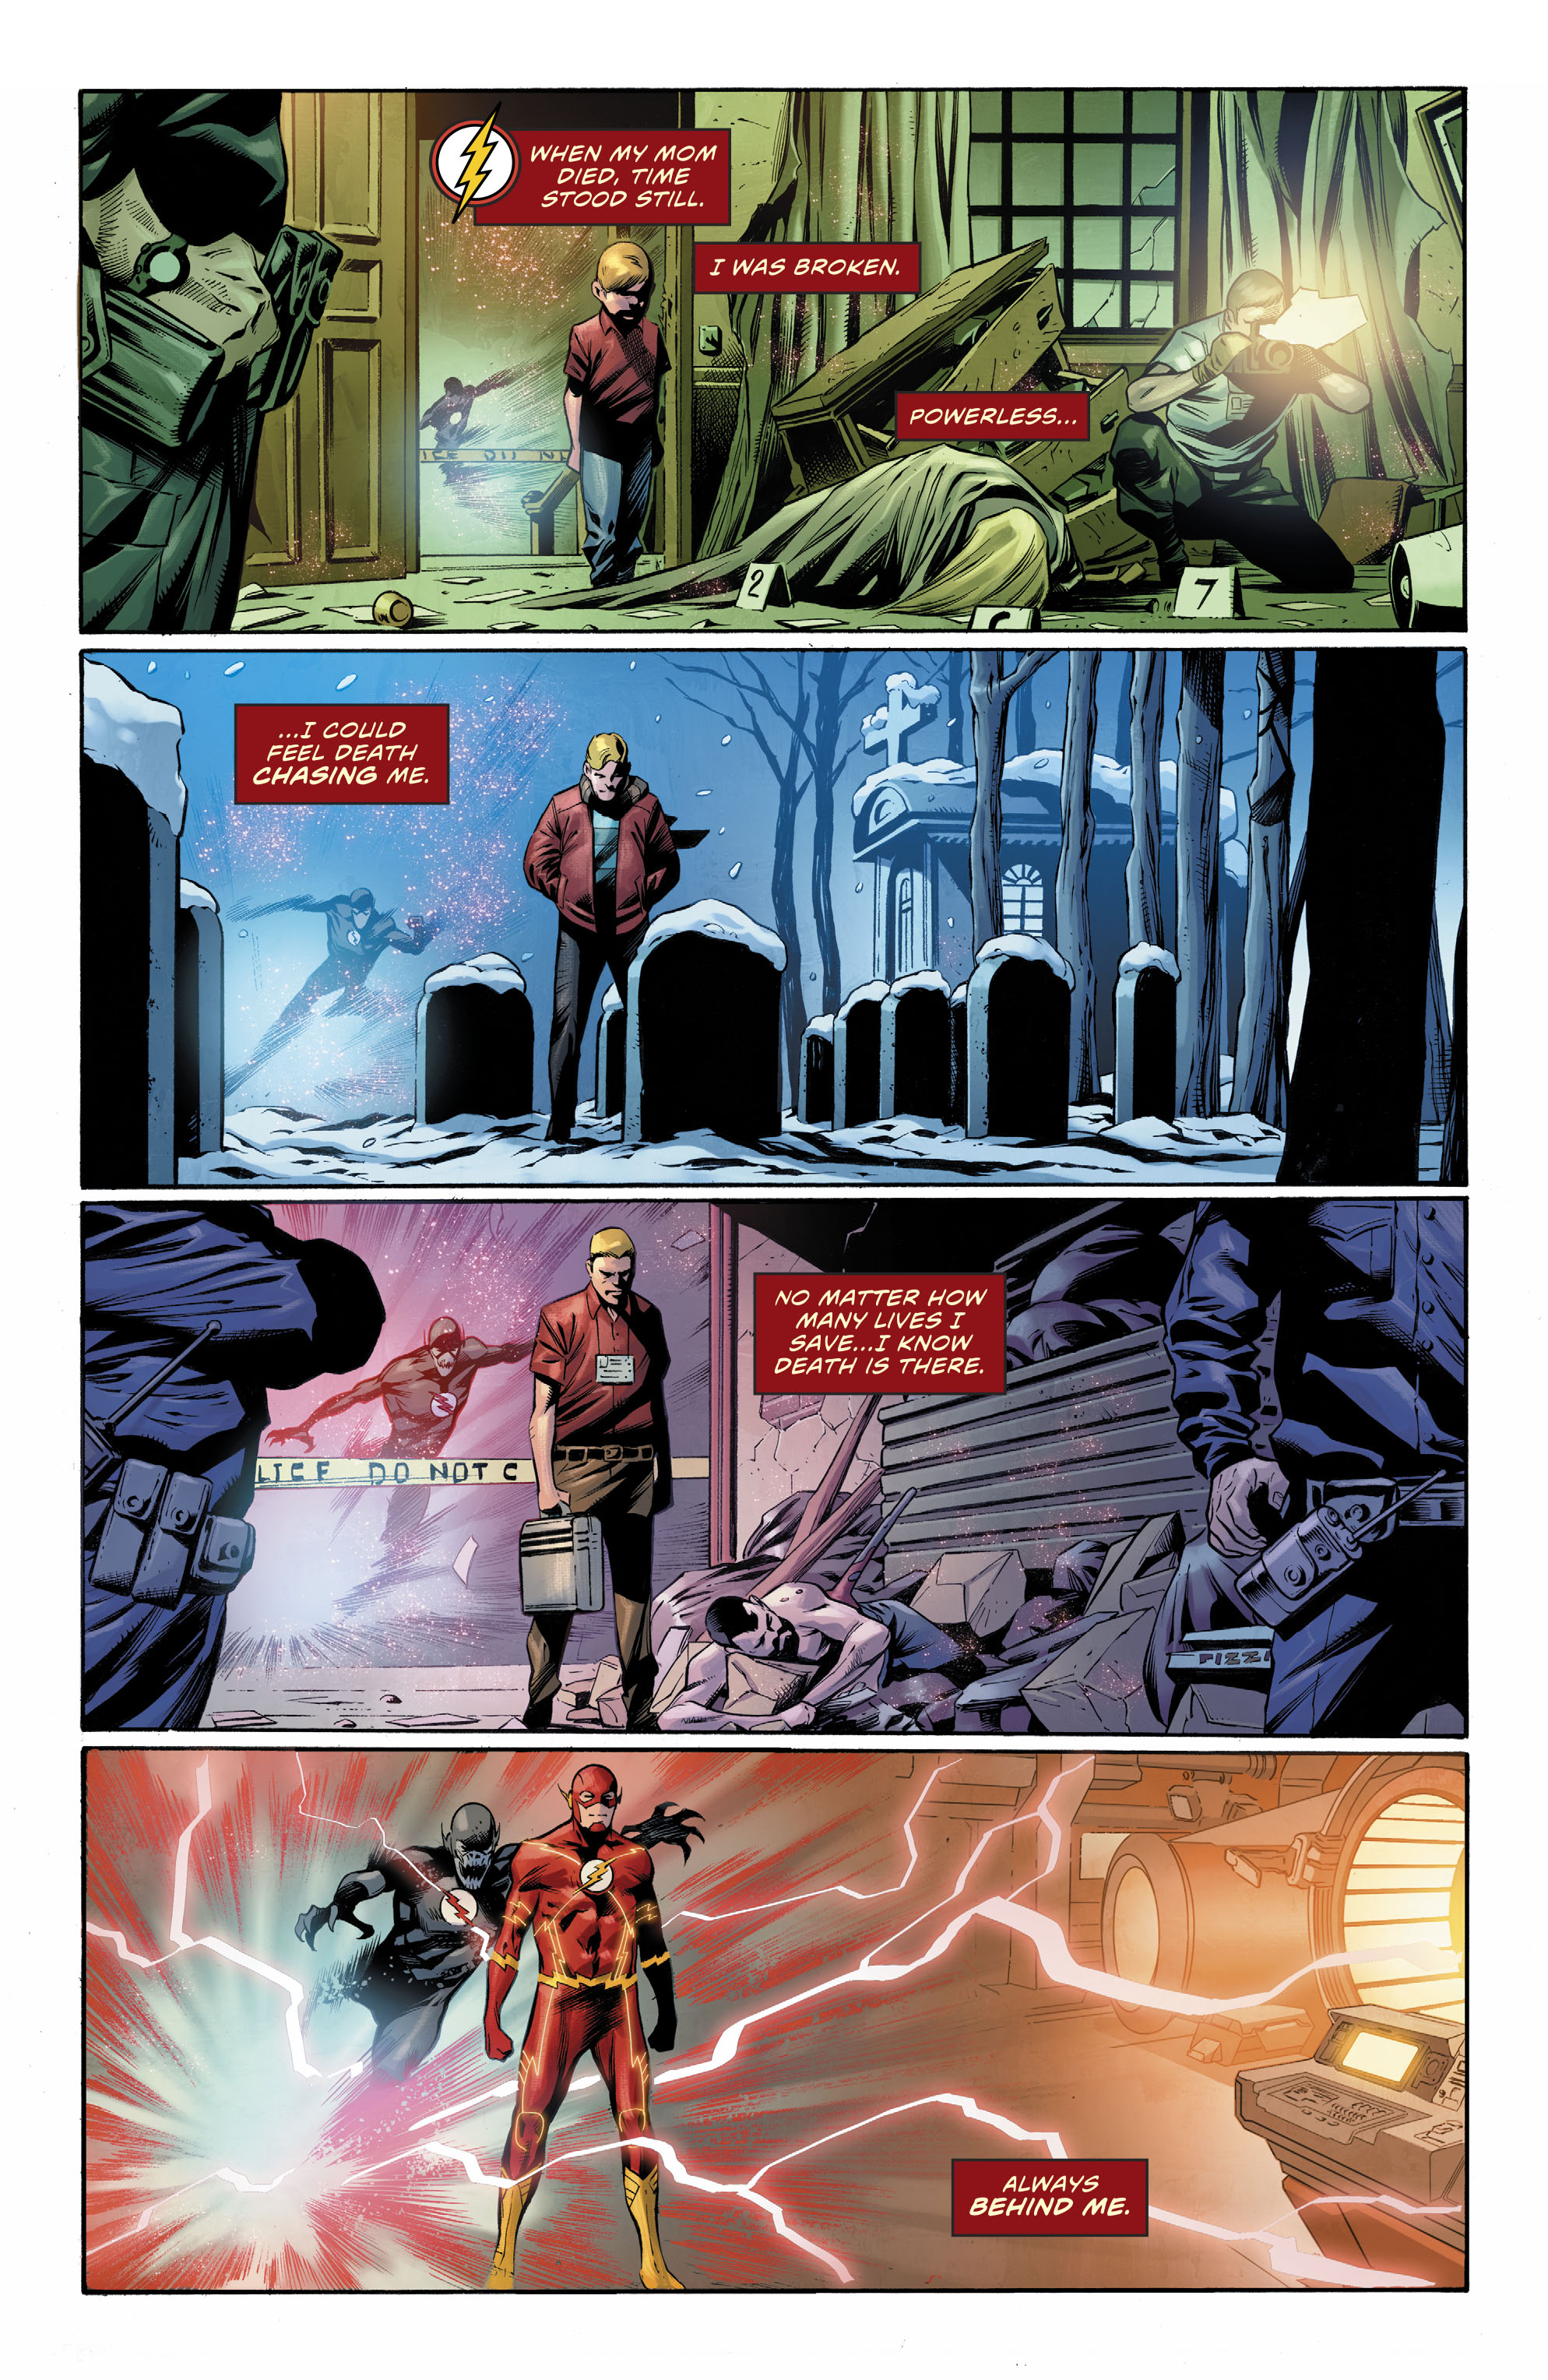 Dc Comics Universe The Flash 78 Spoilers Speed Force Is Dying But Black Flash Of Death After New Forces Still Force Strength Force Sage Force Inside Pulse